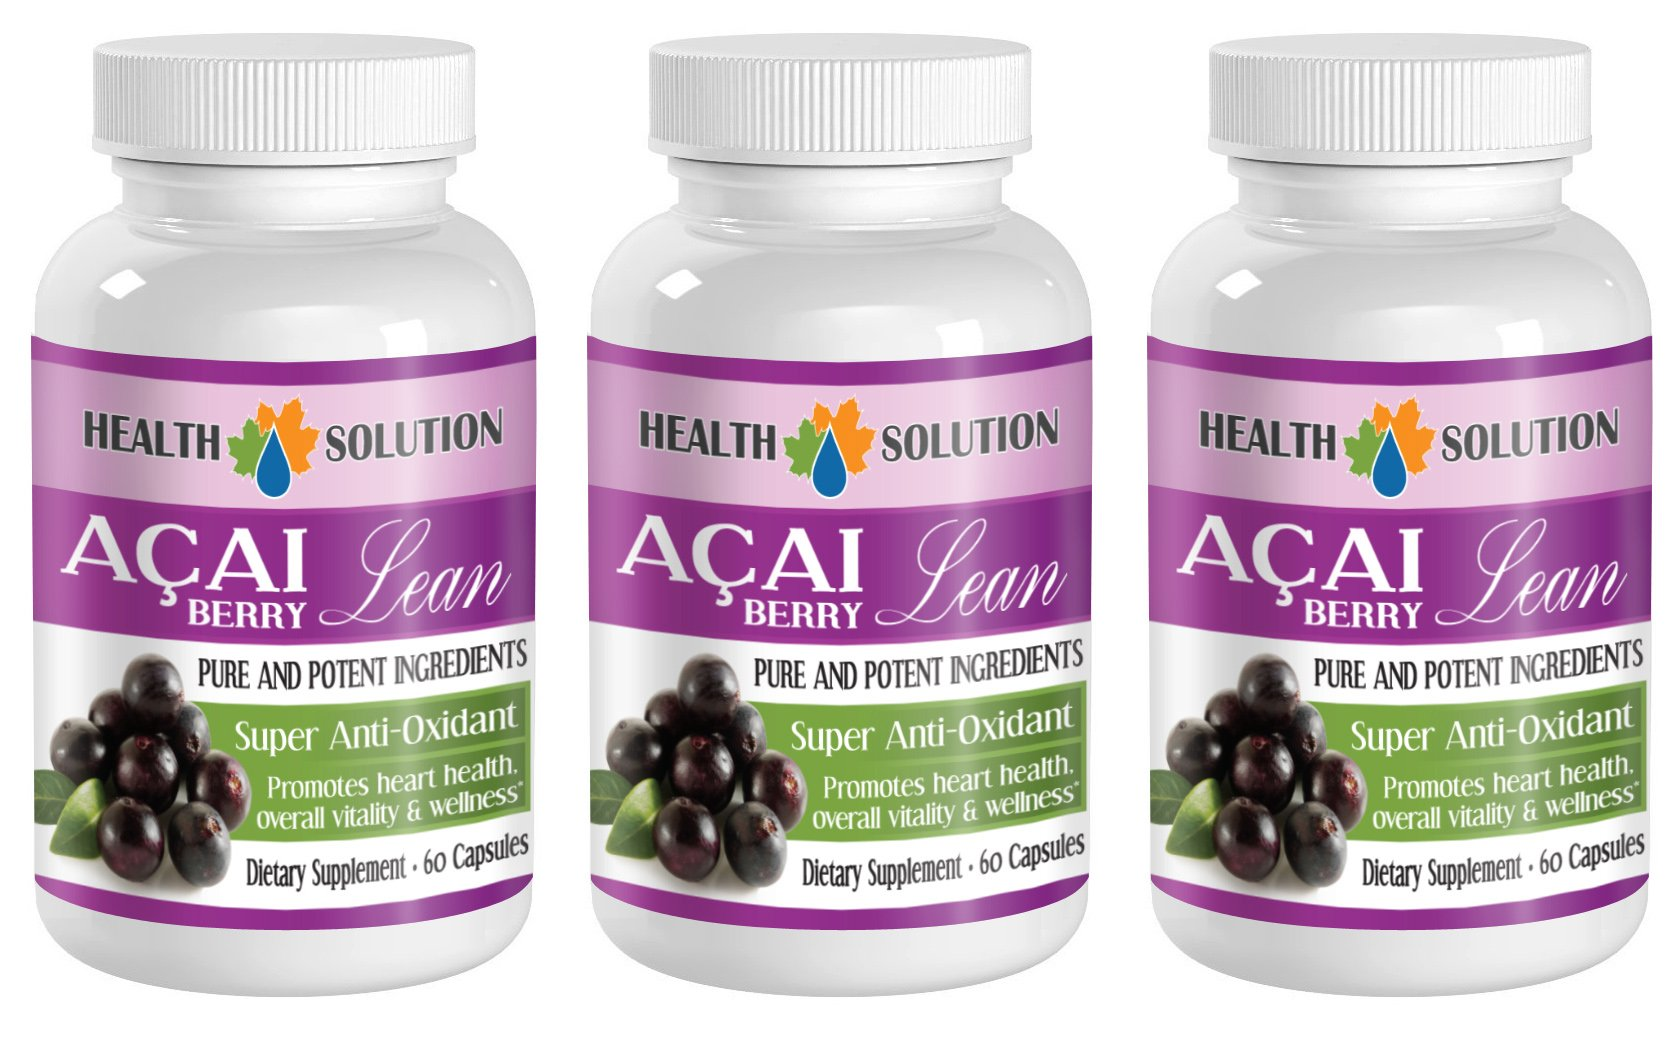 antioxidant complex dietary supplement - ACAI BERRY LEAN - PURE AND POTENT INGREDIENTS - acai supplement - 3 Bottles (180 Capsules)